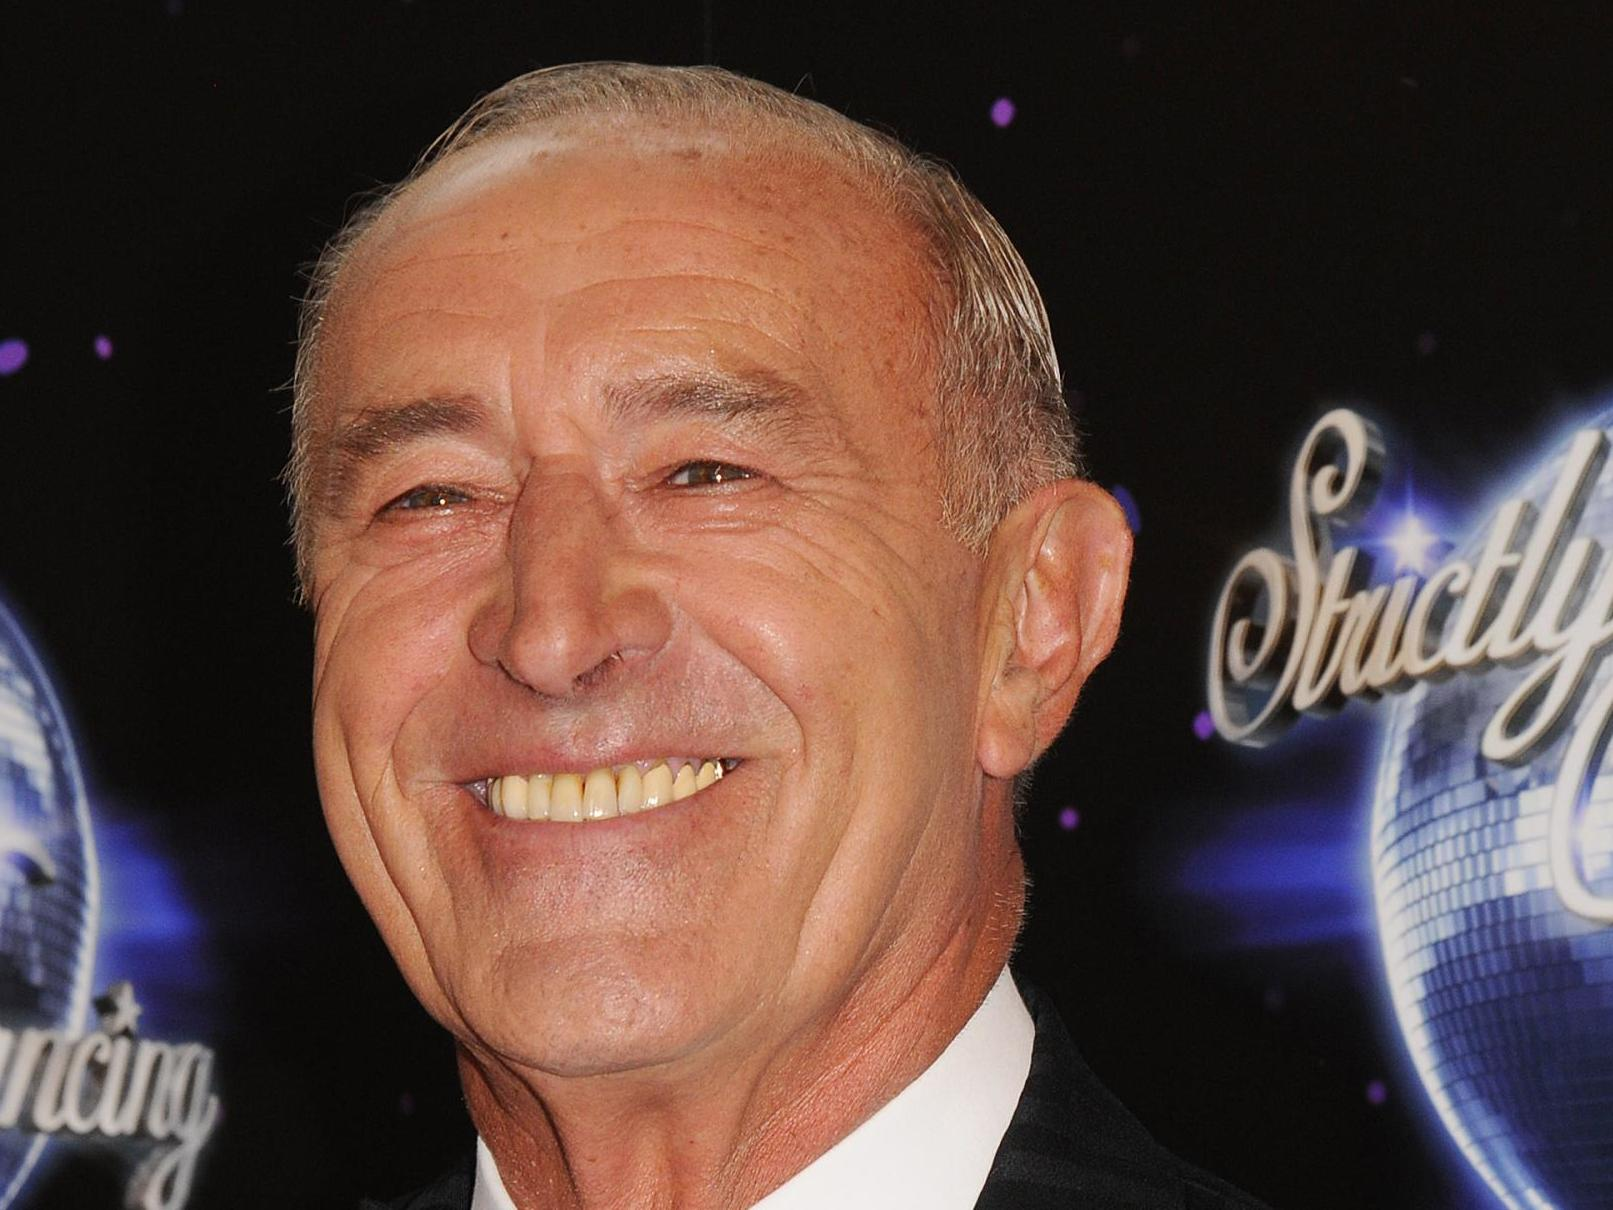 Strictly Come Dancing: Len Goodman predicts backlash to same-sex couples